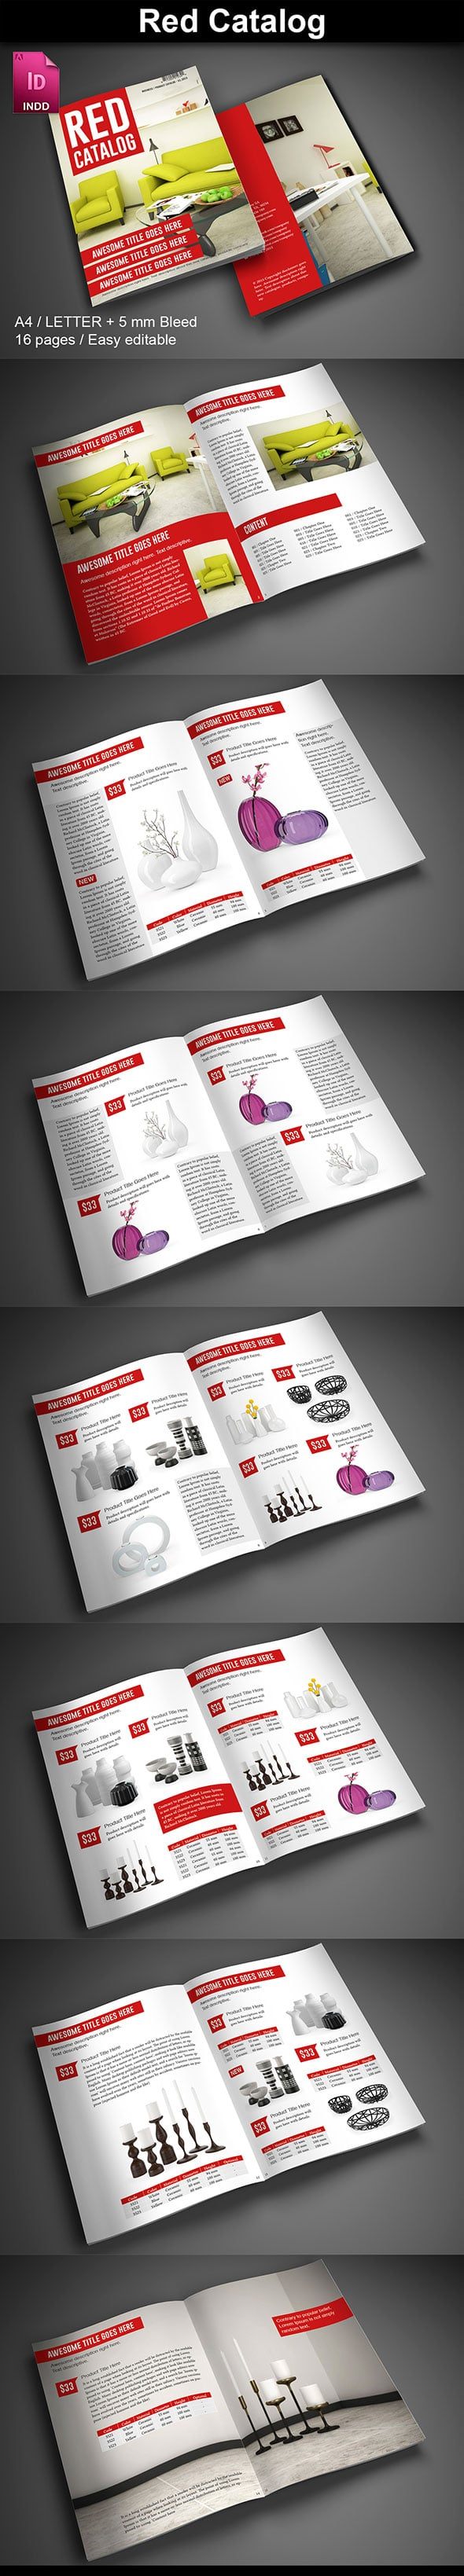 15  InDesign Product Catalogs - just $19 - 01 RedCatalog ImagePreview2